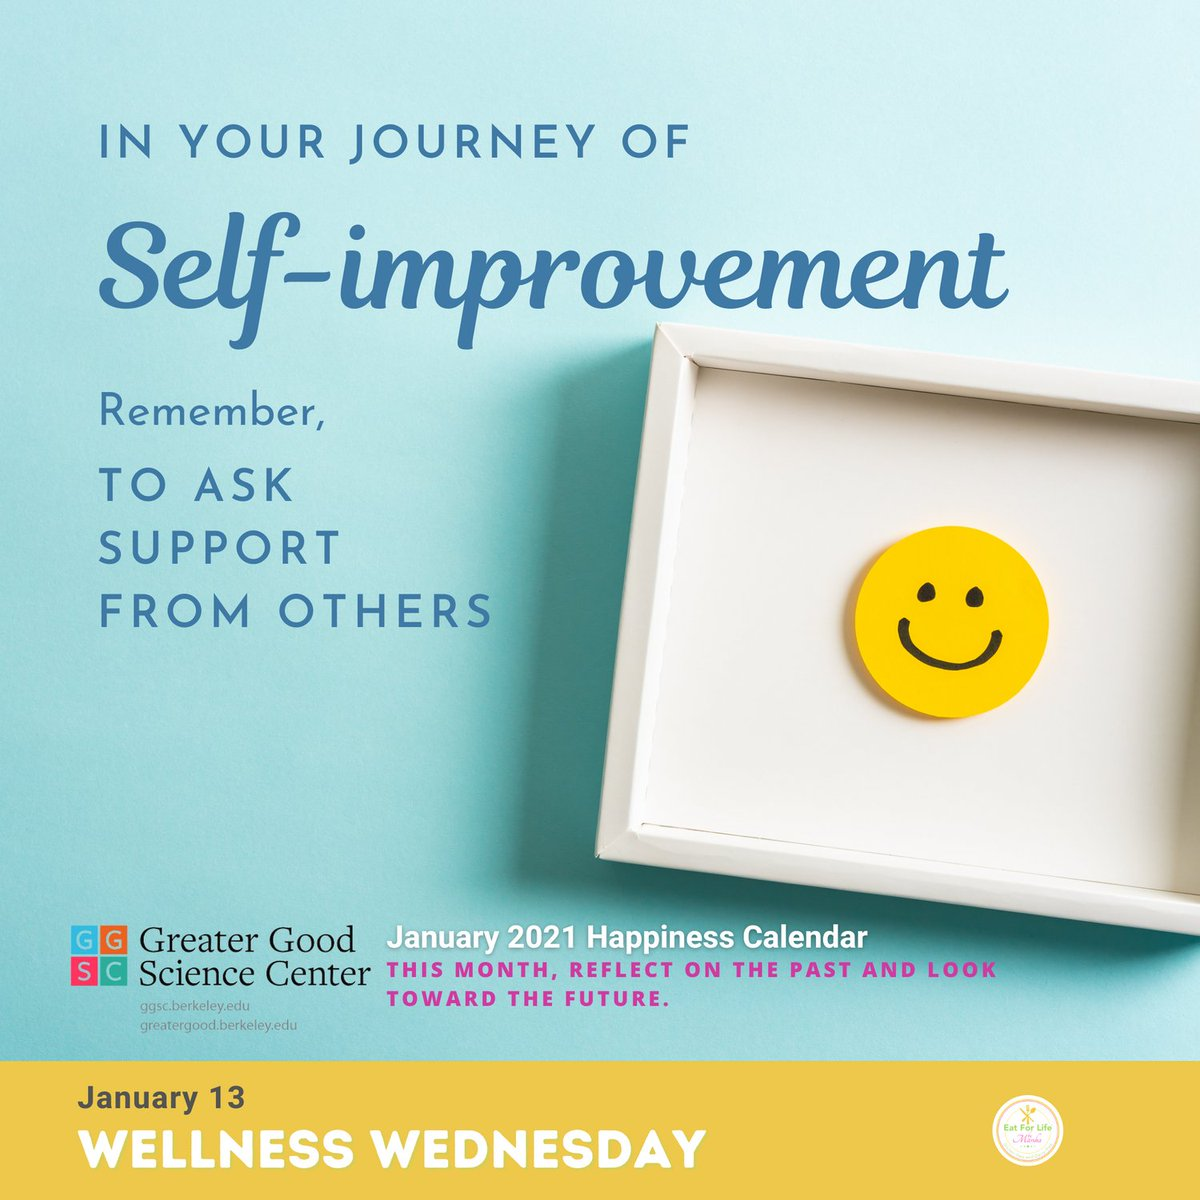 Happy Wellness Wednesday! 😊 And 3 days before my #birthday 🎂😁  On this #wellnesswednesday my #wellbeing #inspiration came from the Greater Good Science Center @GreaterGoodSC  Enjoy this #wednesday being #well with #yourself #selfcare  #meditation #mindfulness #selflove